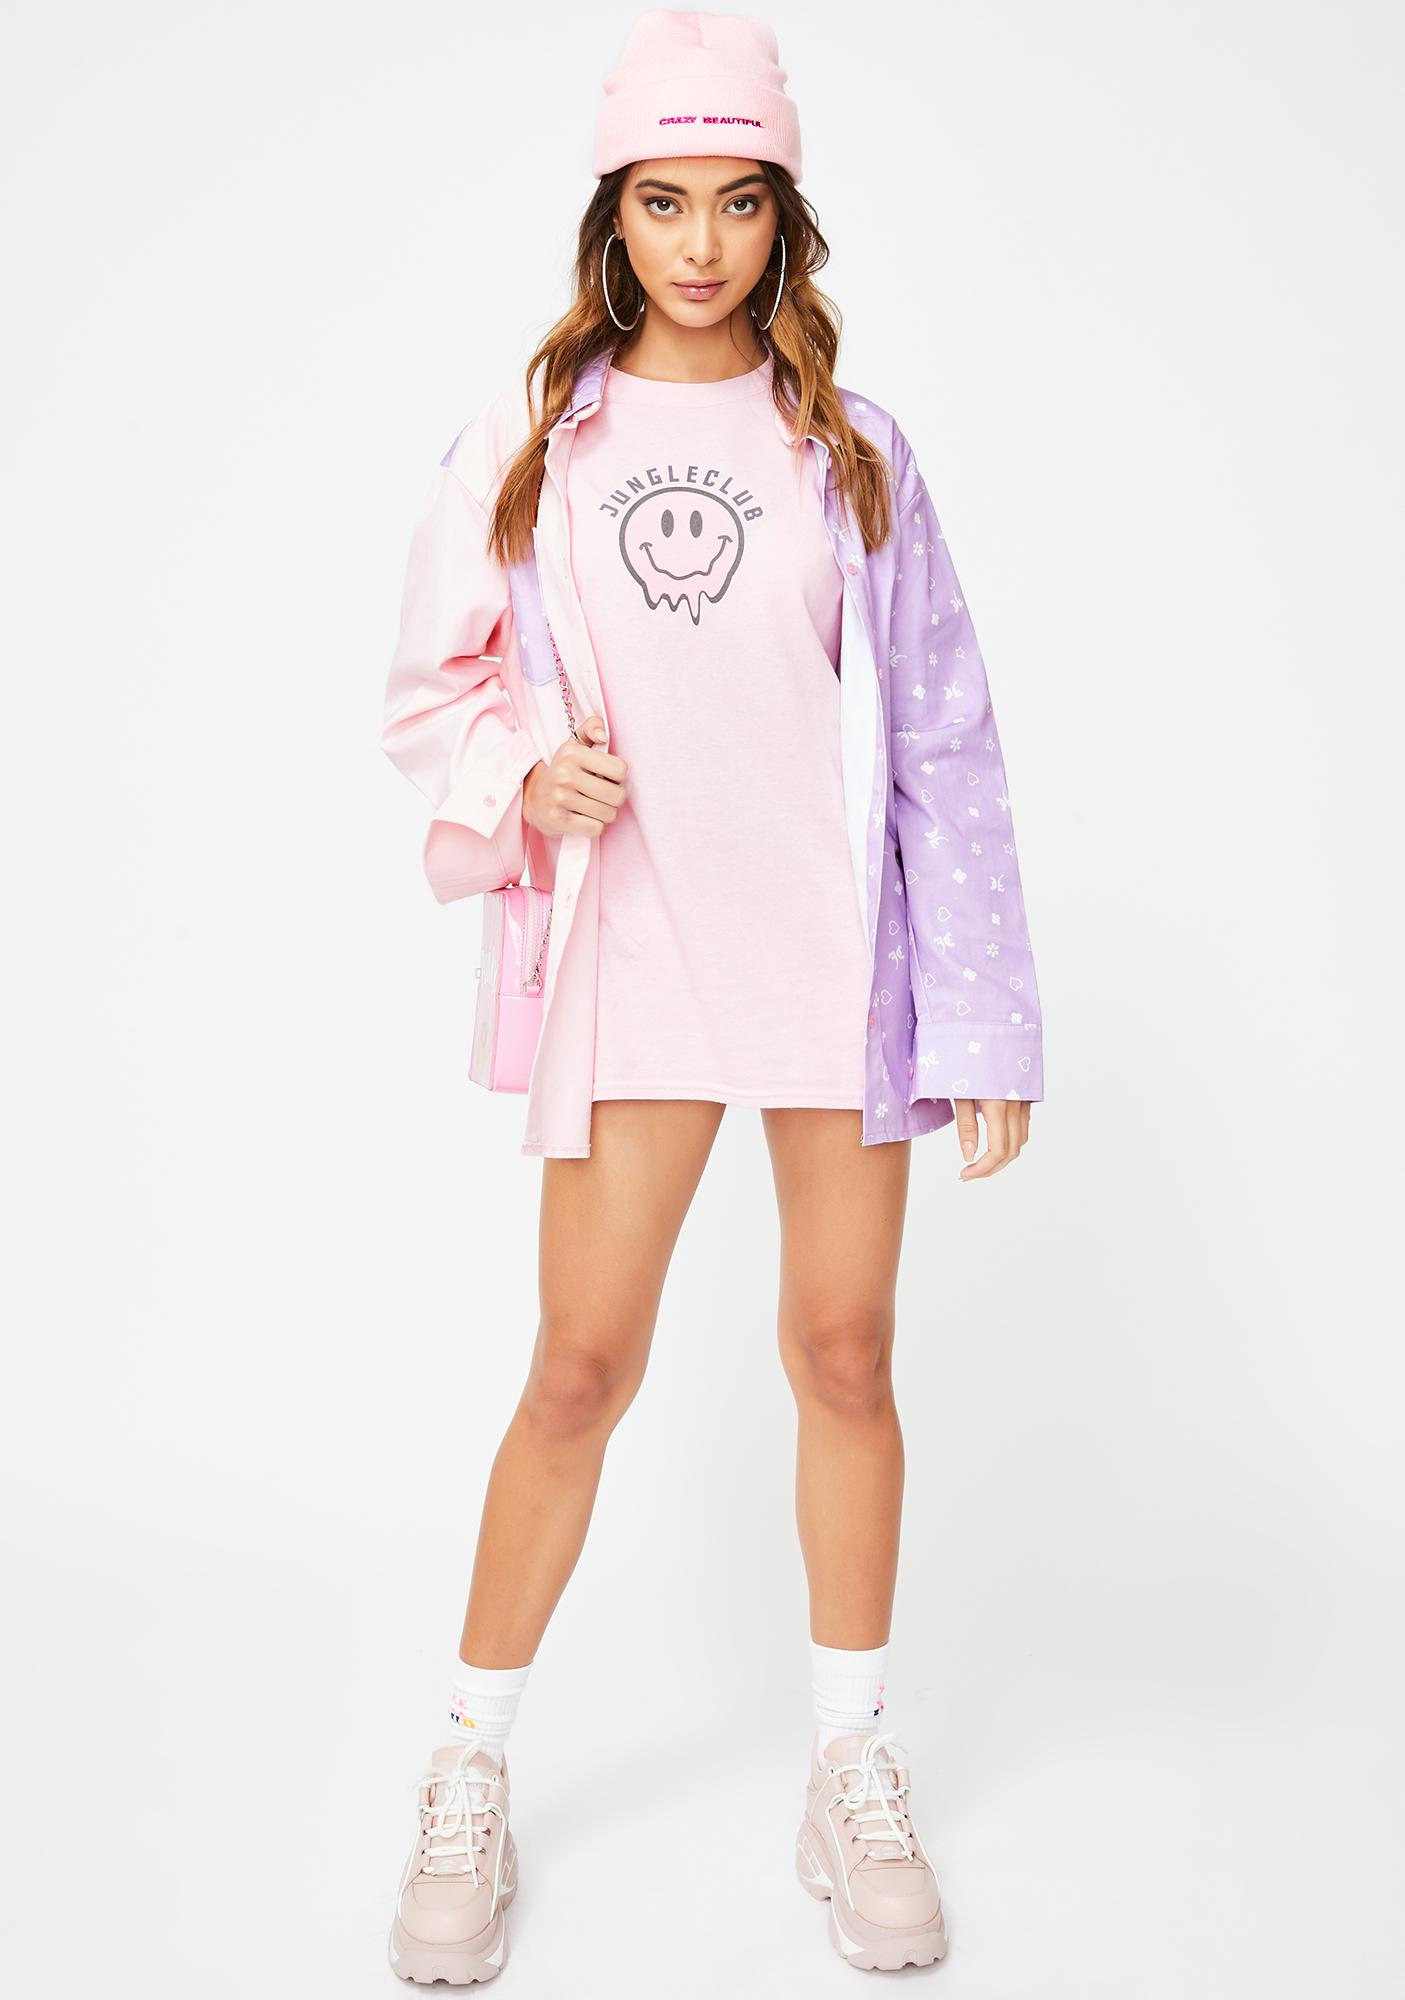 JUNGLECLUB CLOTHING Smiley Graphic Tee